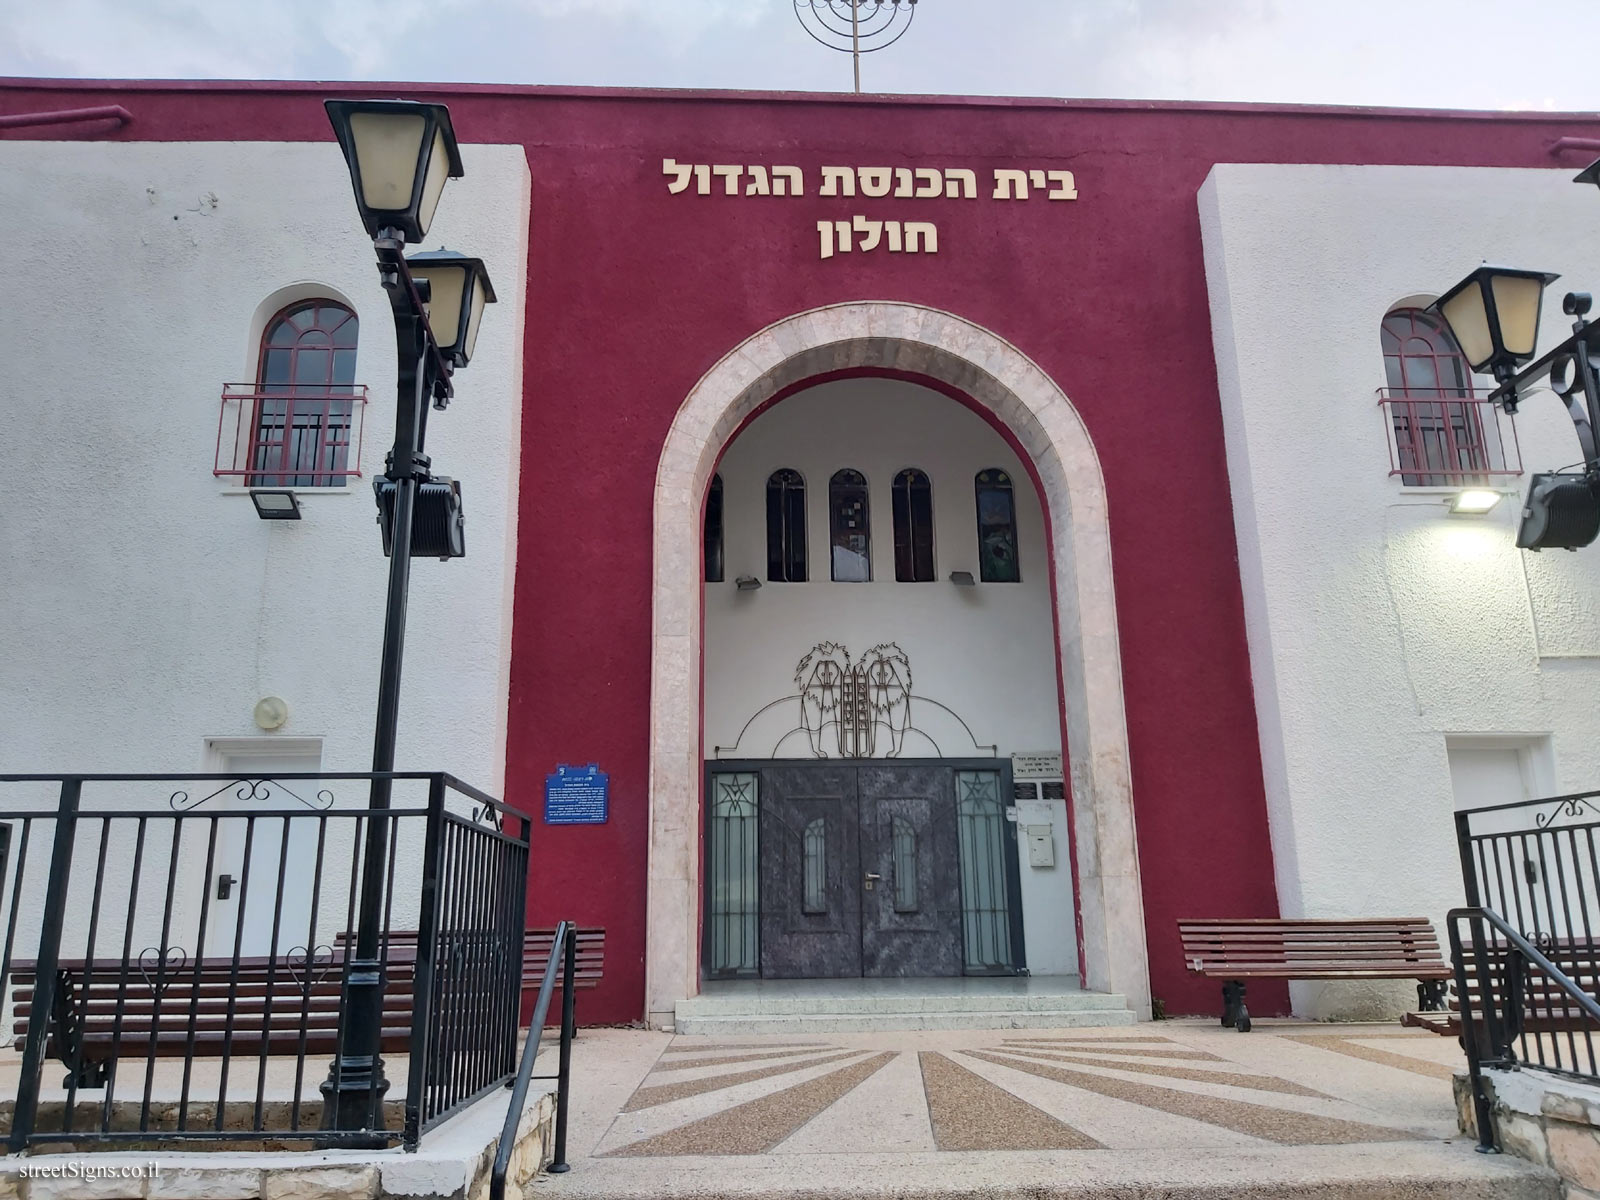 Holon - Heritage Sites in Israel - The Great Synagogue - HaRav Kuk St 5, Holon, Israel